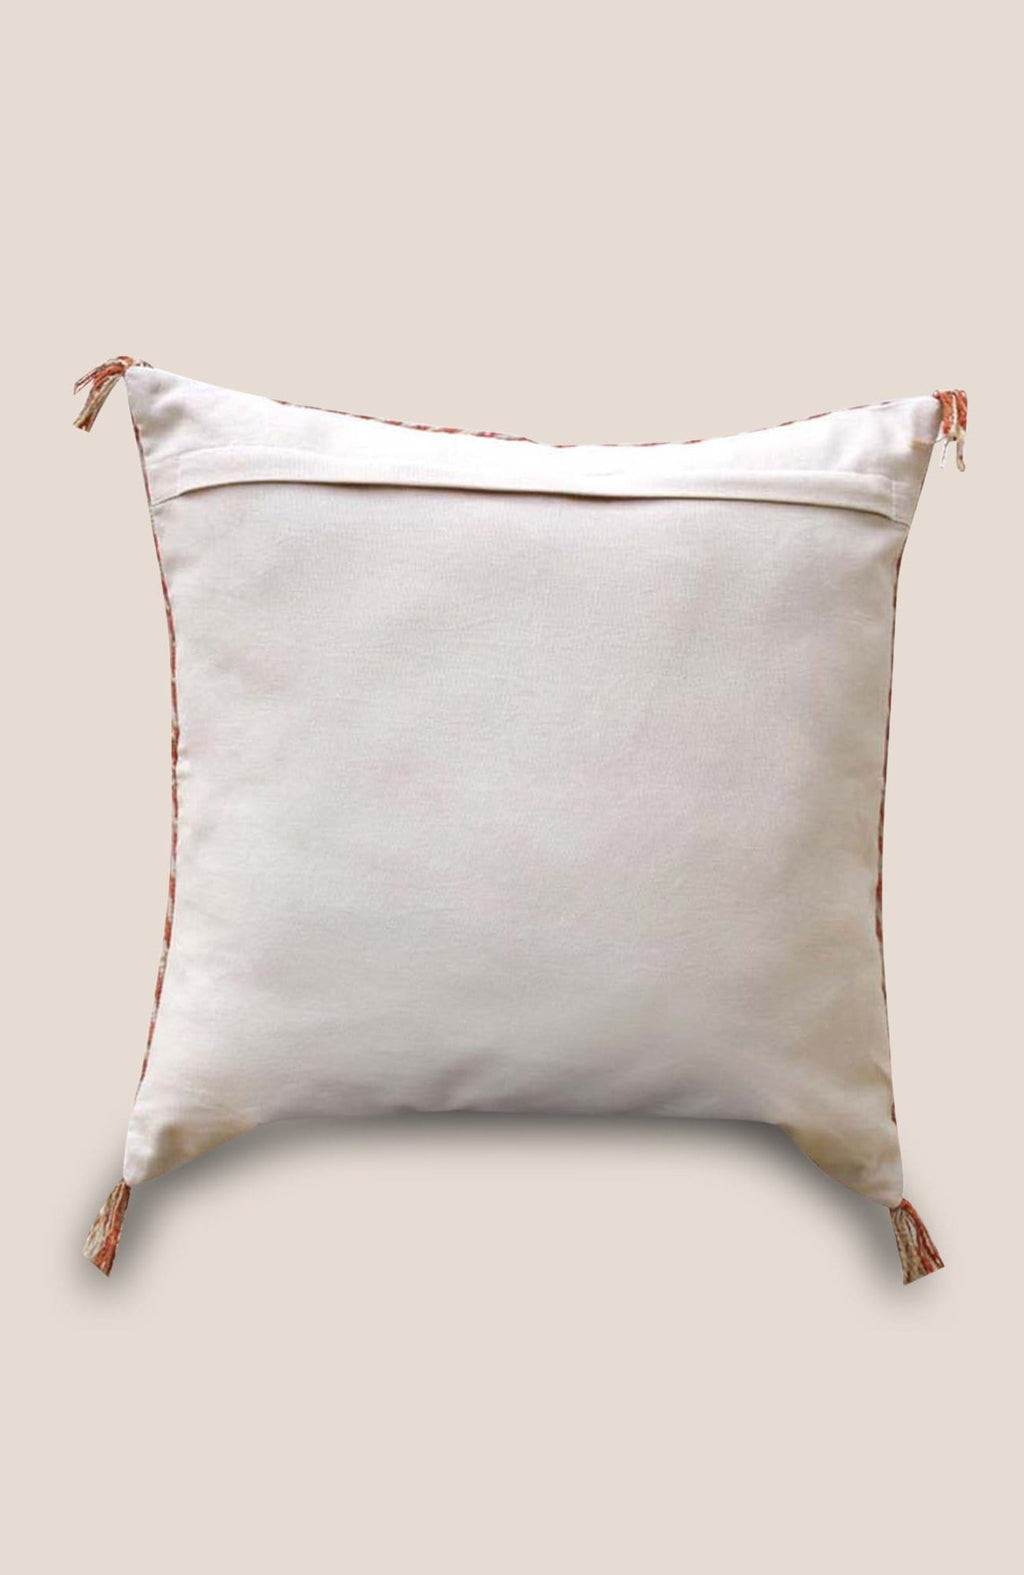 Sabra Pillow Cover Riona - Home Decor | Shop Baskets, Ceramics, Pillows, Rugs & Wall Hangs online